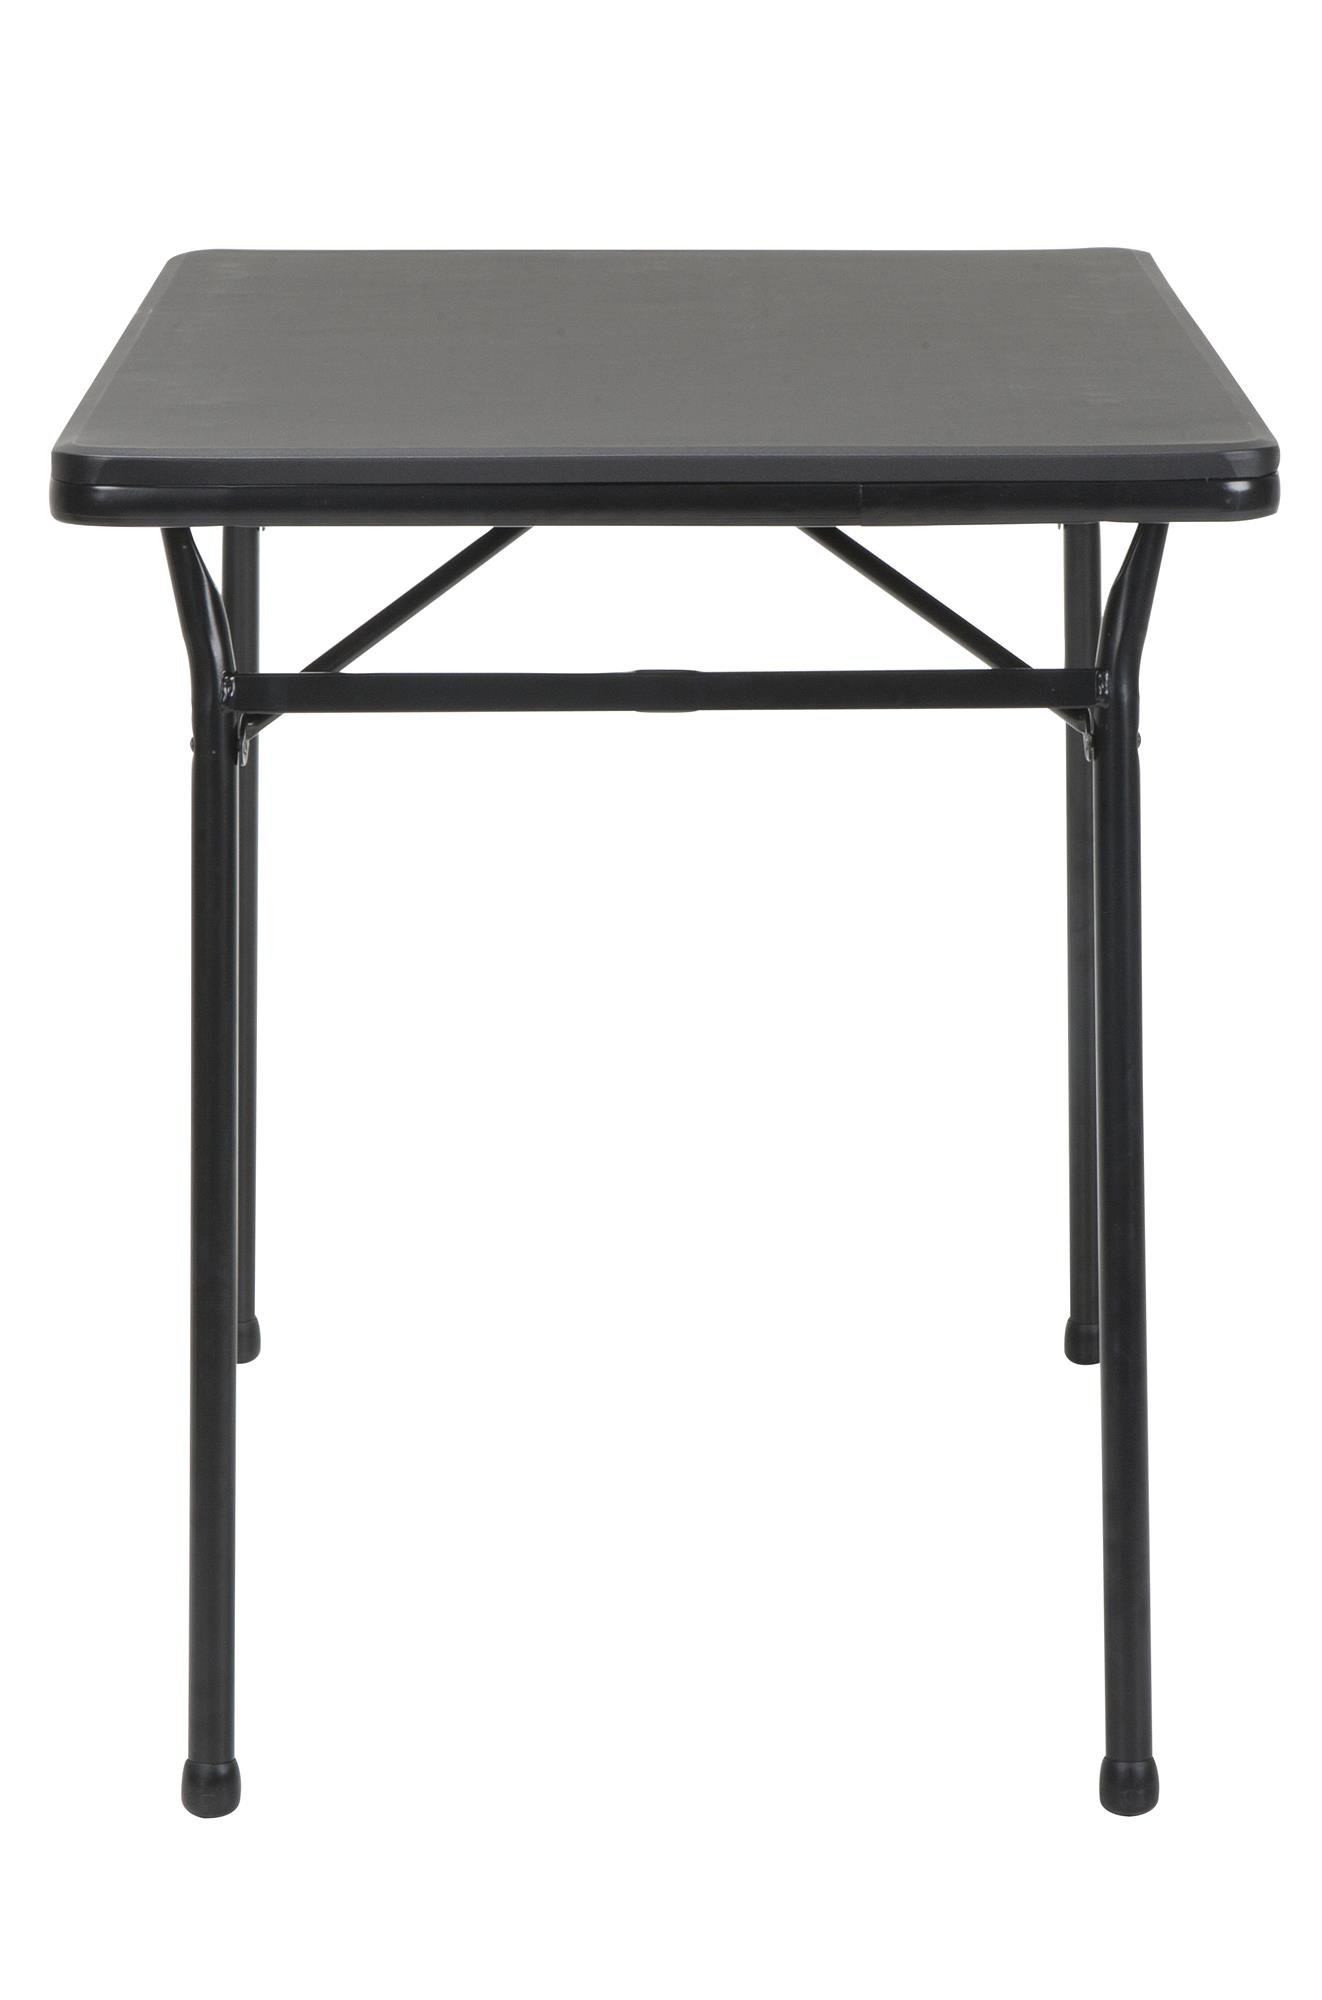 Cosco Products COSCO 3 Piece Indoor Outdoor Table and 2 Bench Tailgate Set, Black by Cosco Products (Image #9)